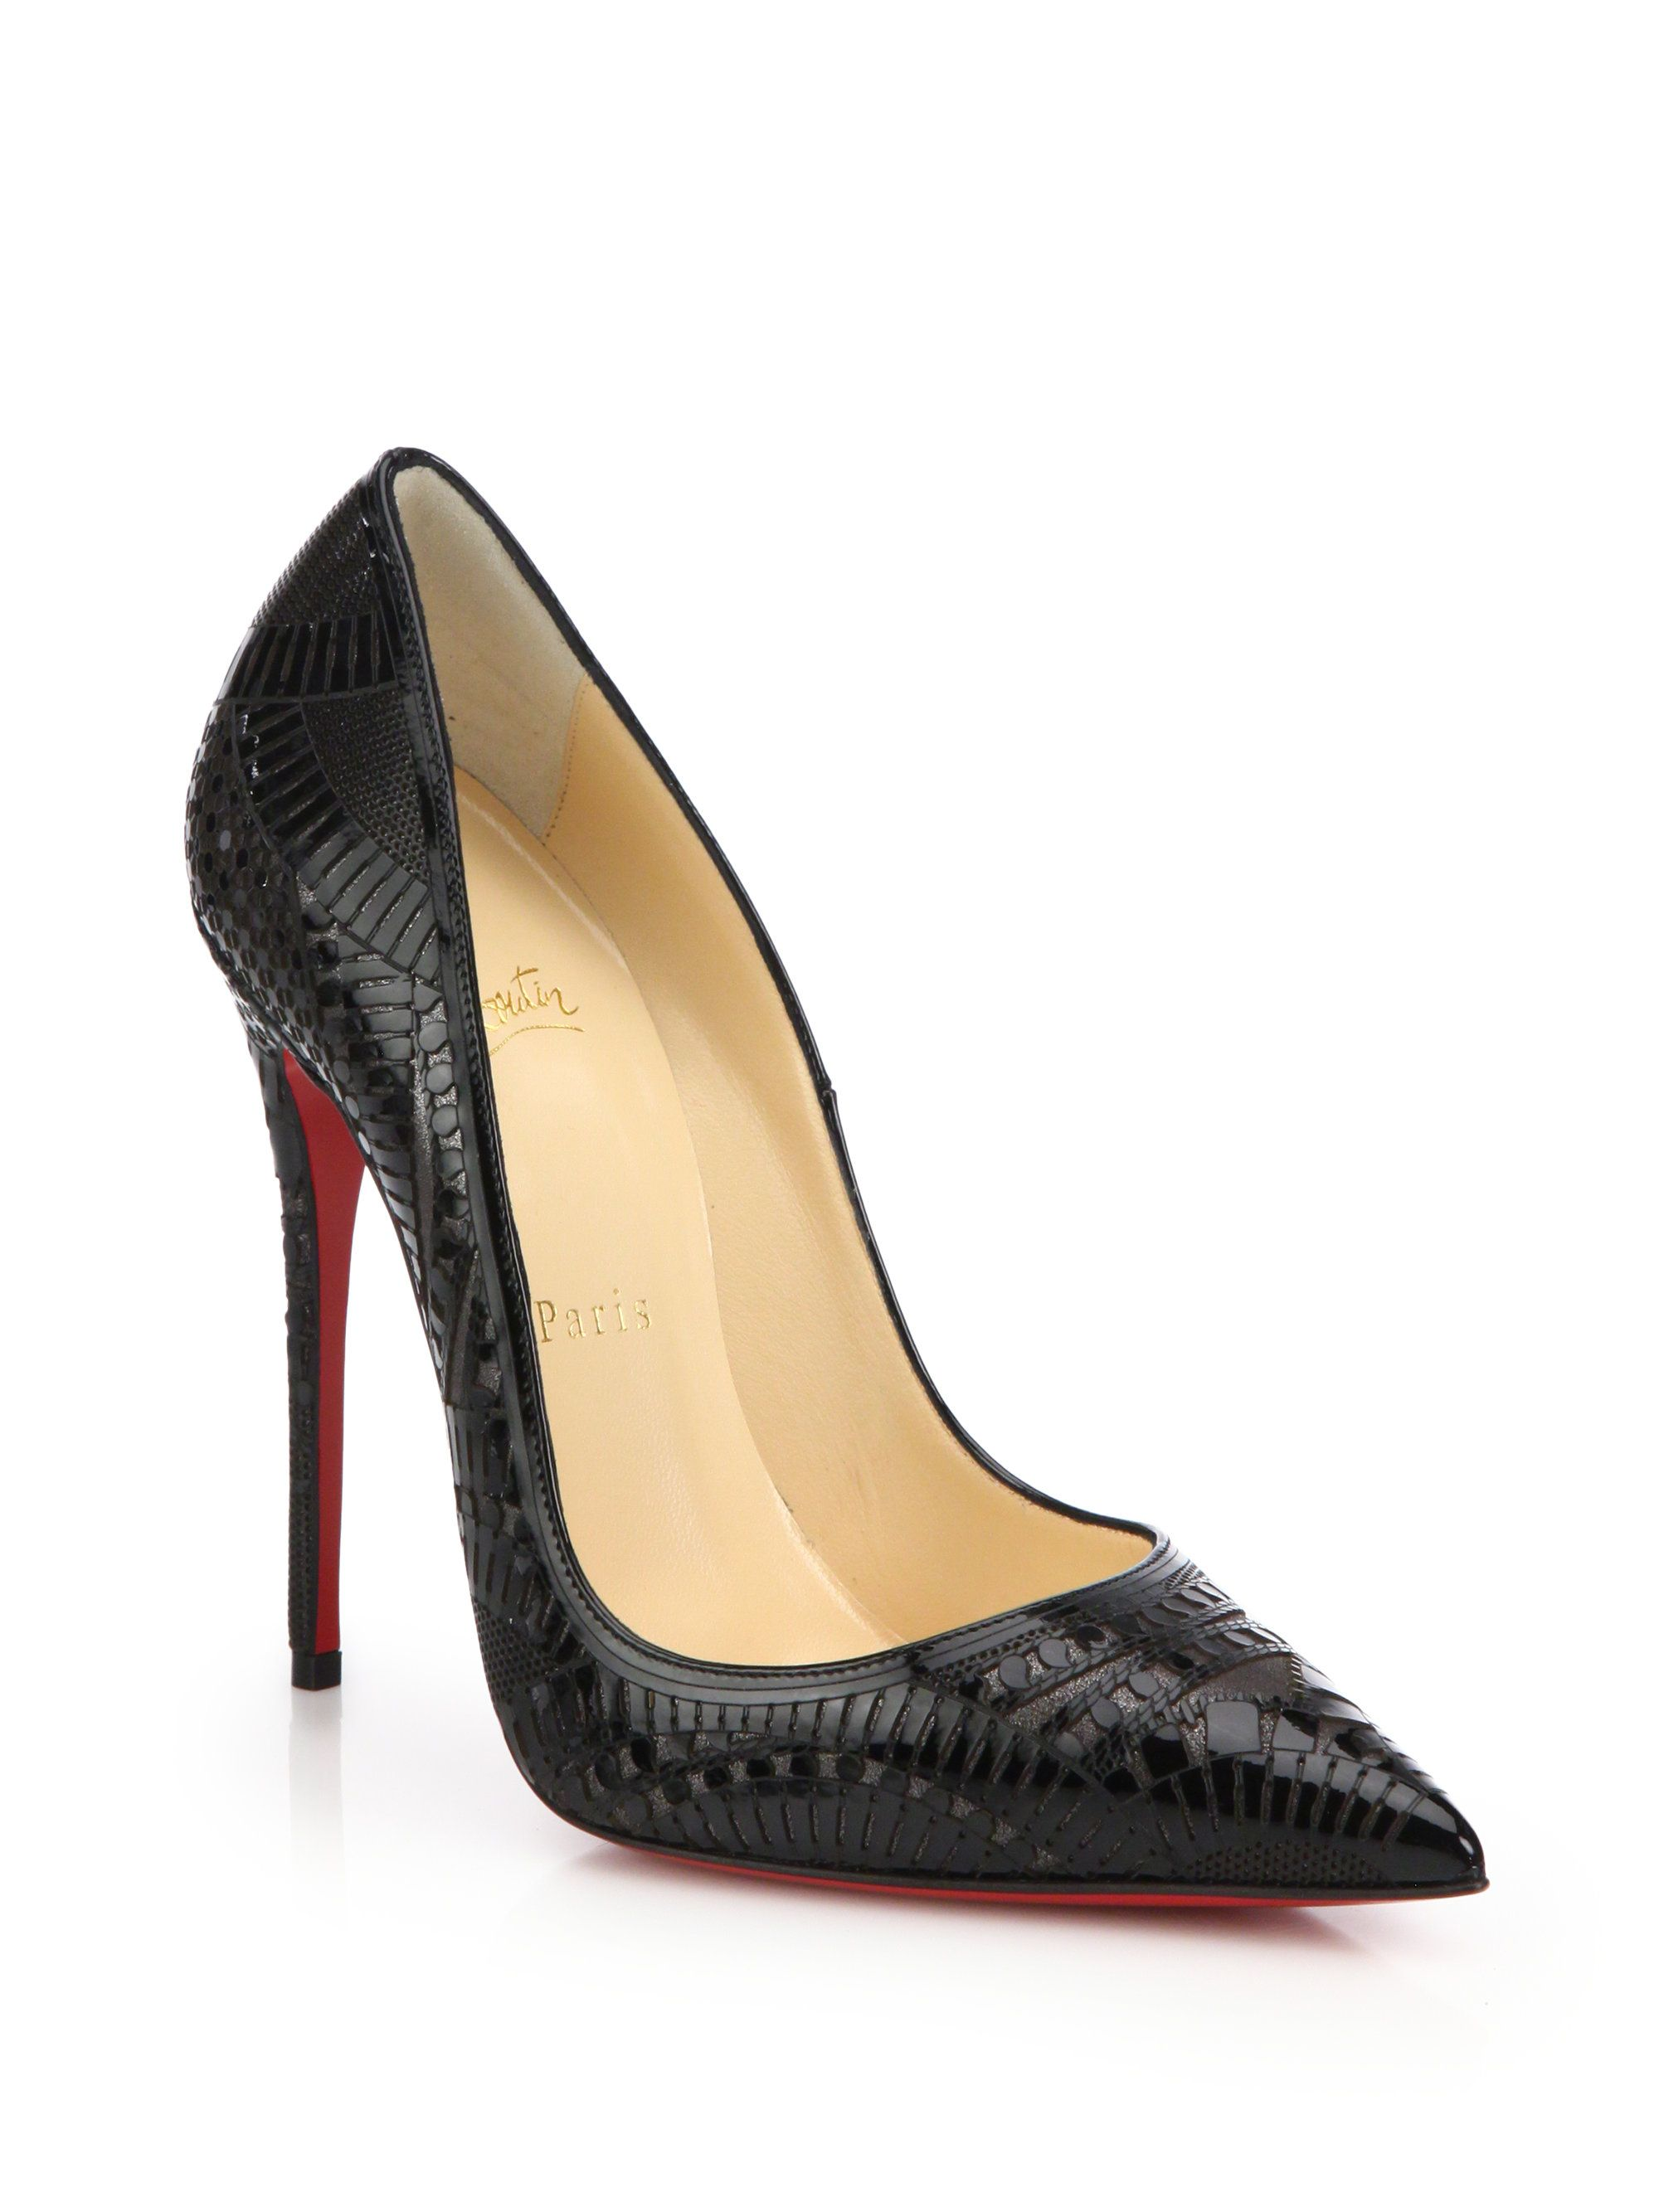 a68f7614a2ca ... promo code for christian louboutin black kristali laser cut patent  leather pumps lyst 6c32d 78cc2 ...